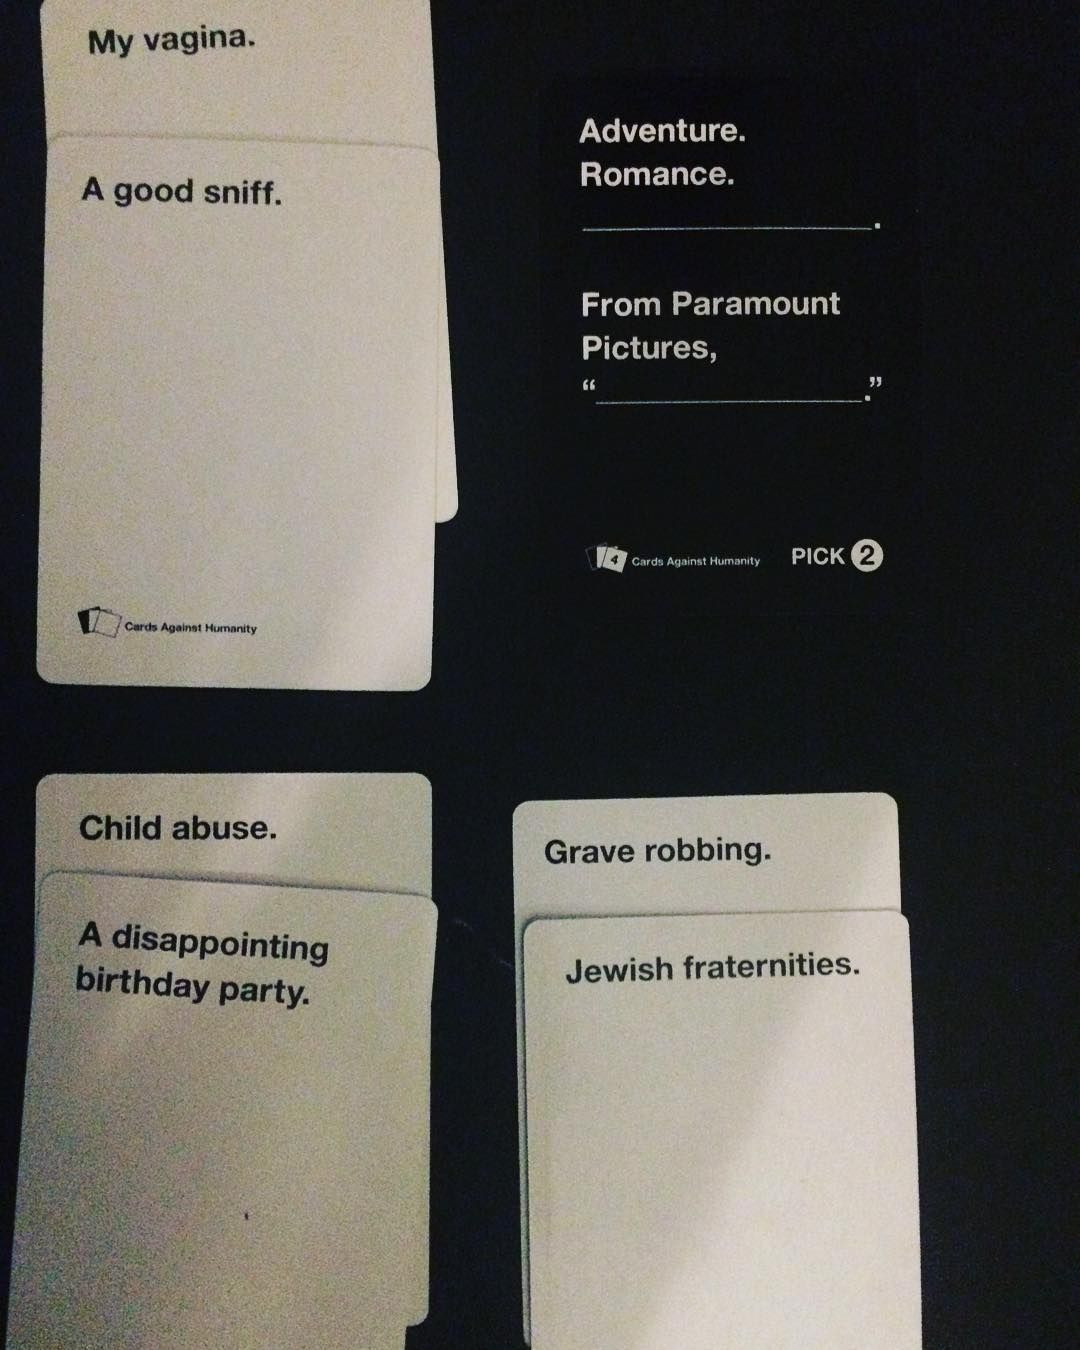 That one round of cardsagainsthumanity where we all had FIRE